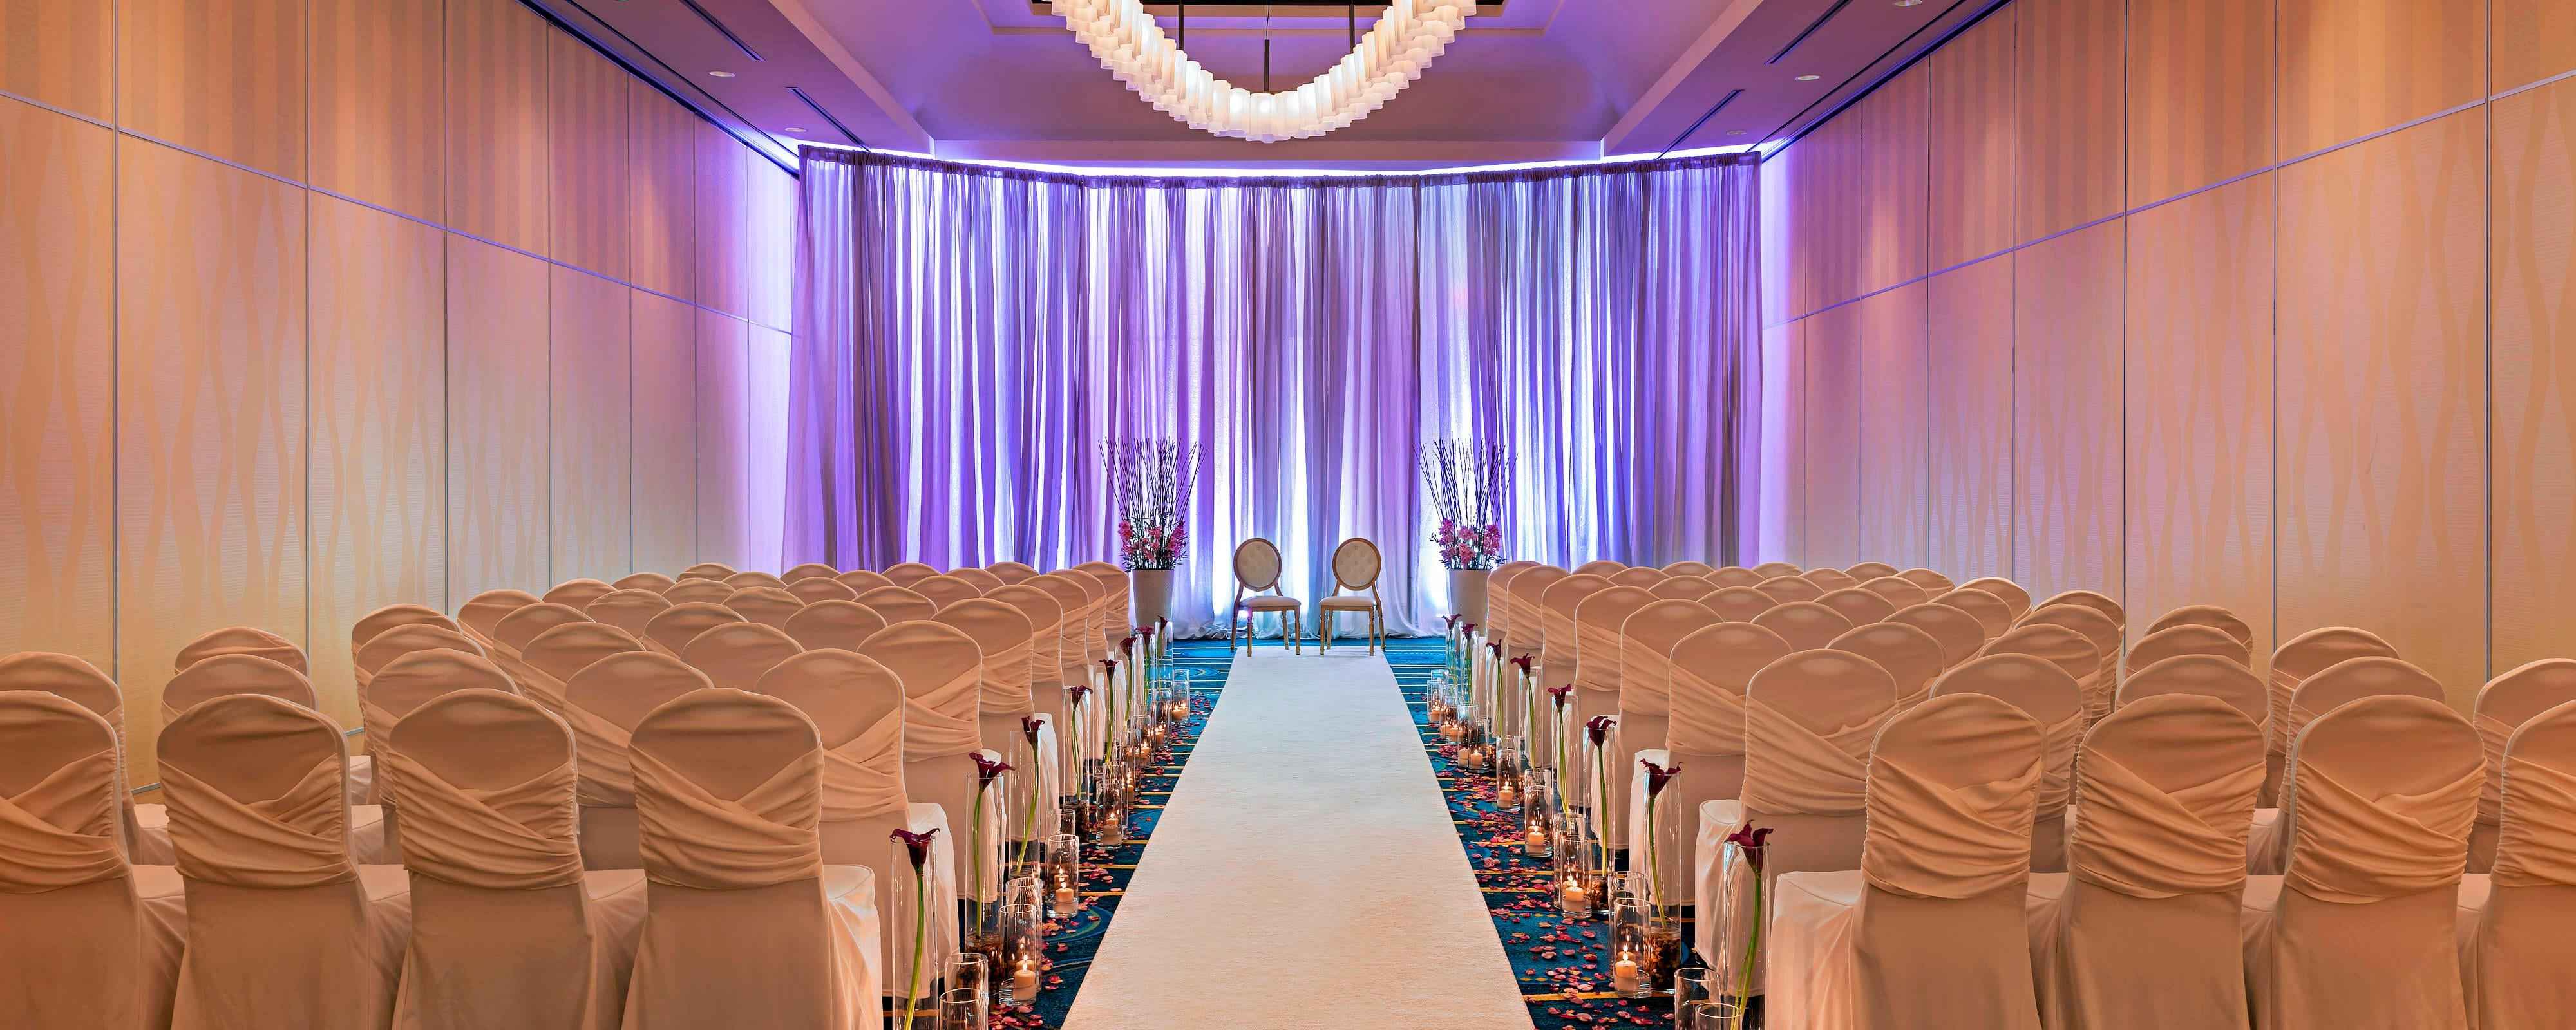 Weddings Near The Montreal Airport Montreal Airport